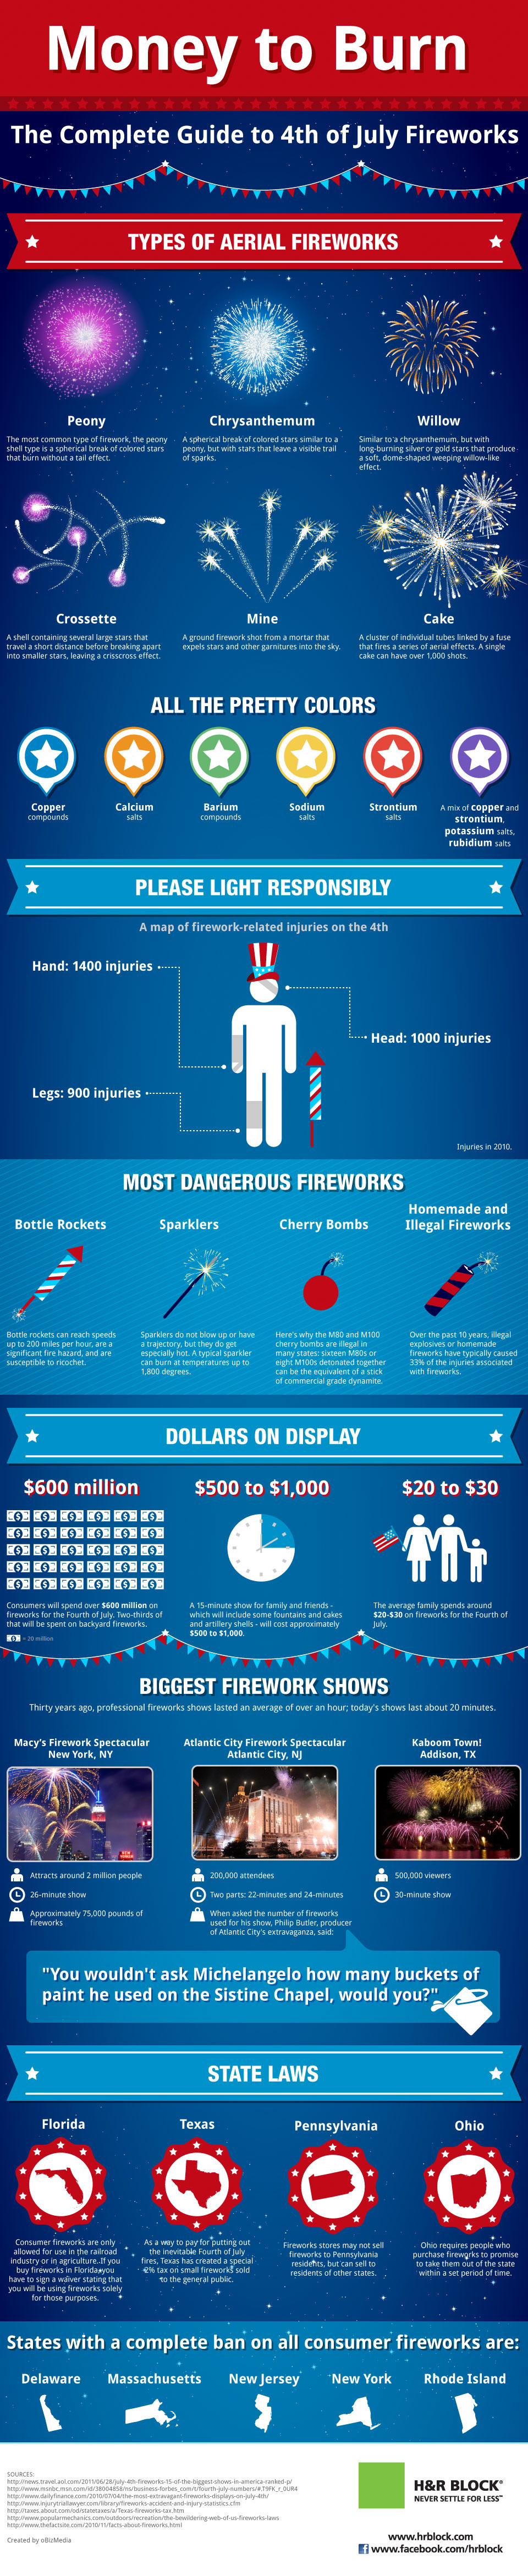 Complete-Guide-To-July-4th-Fireworks-infographic